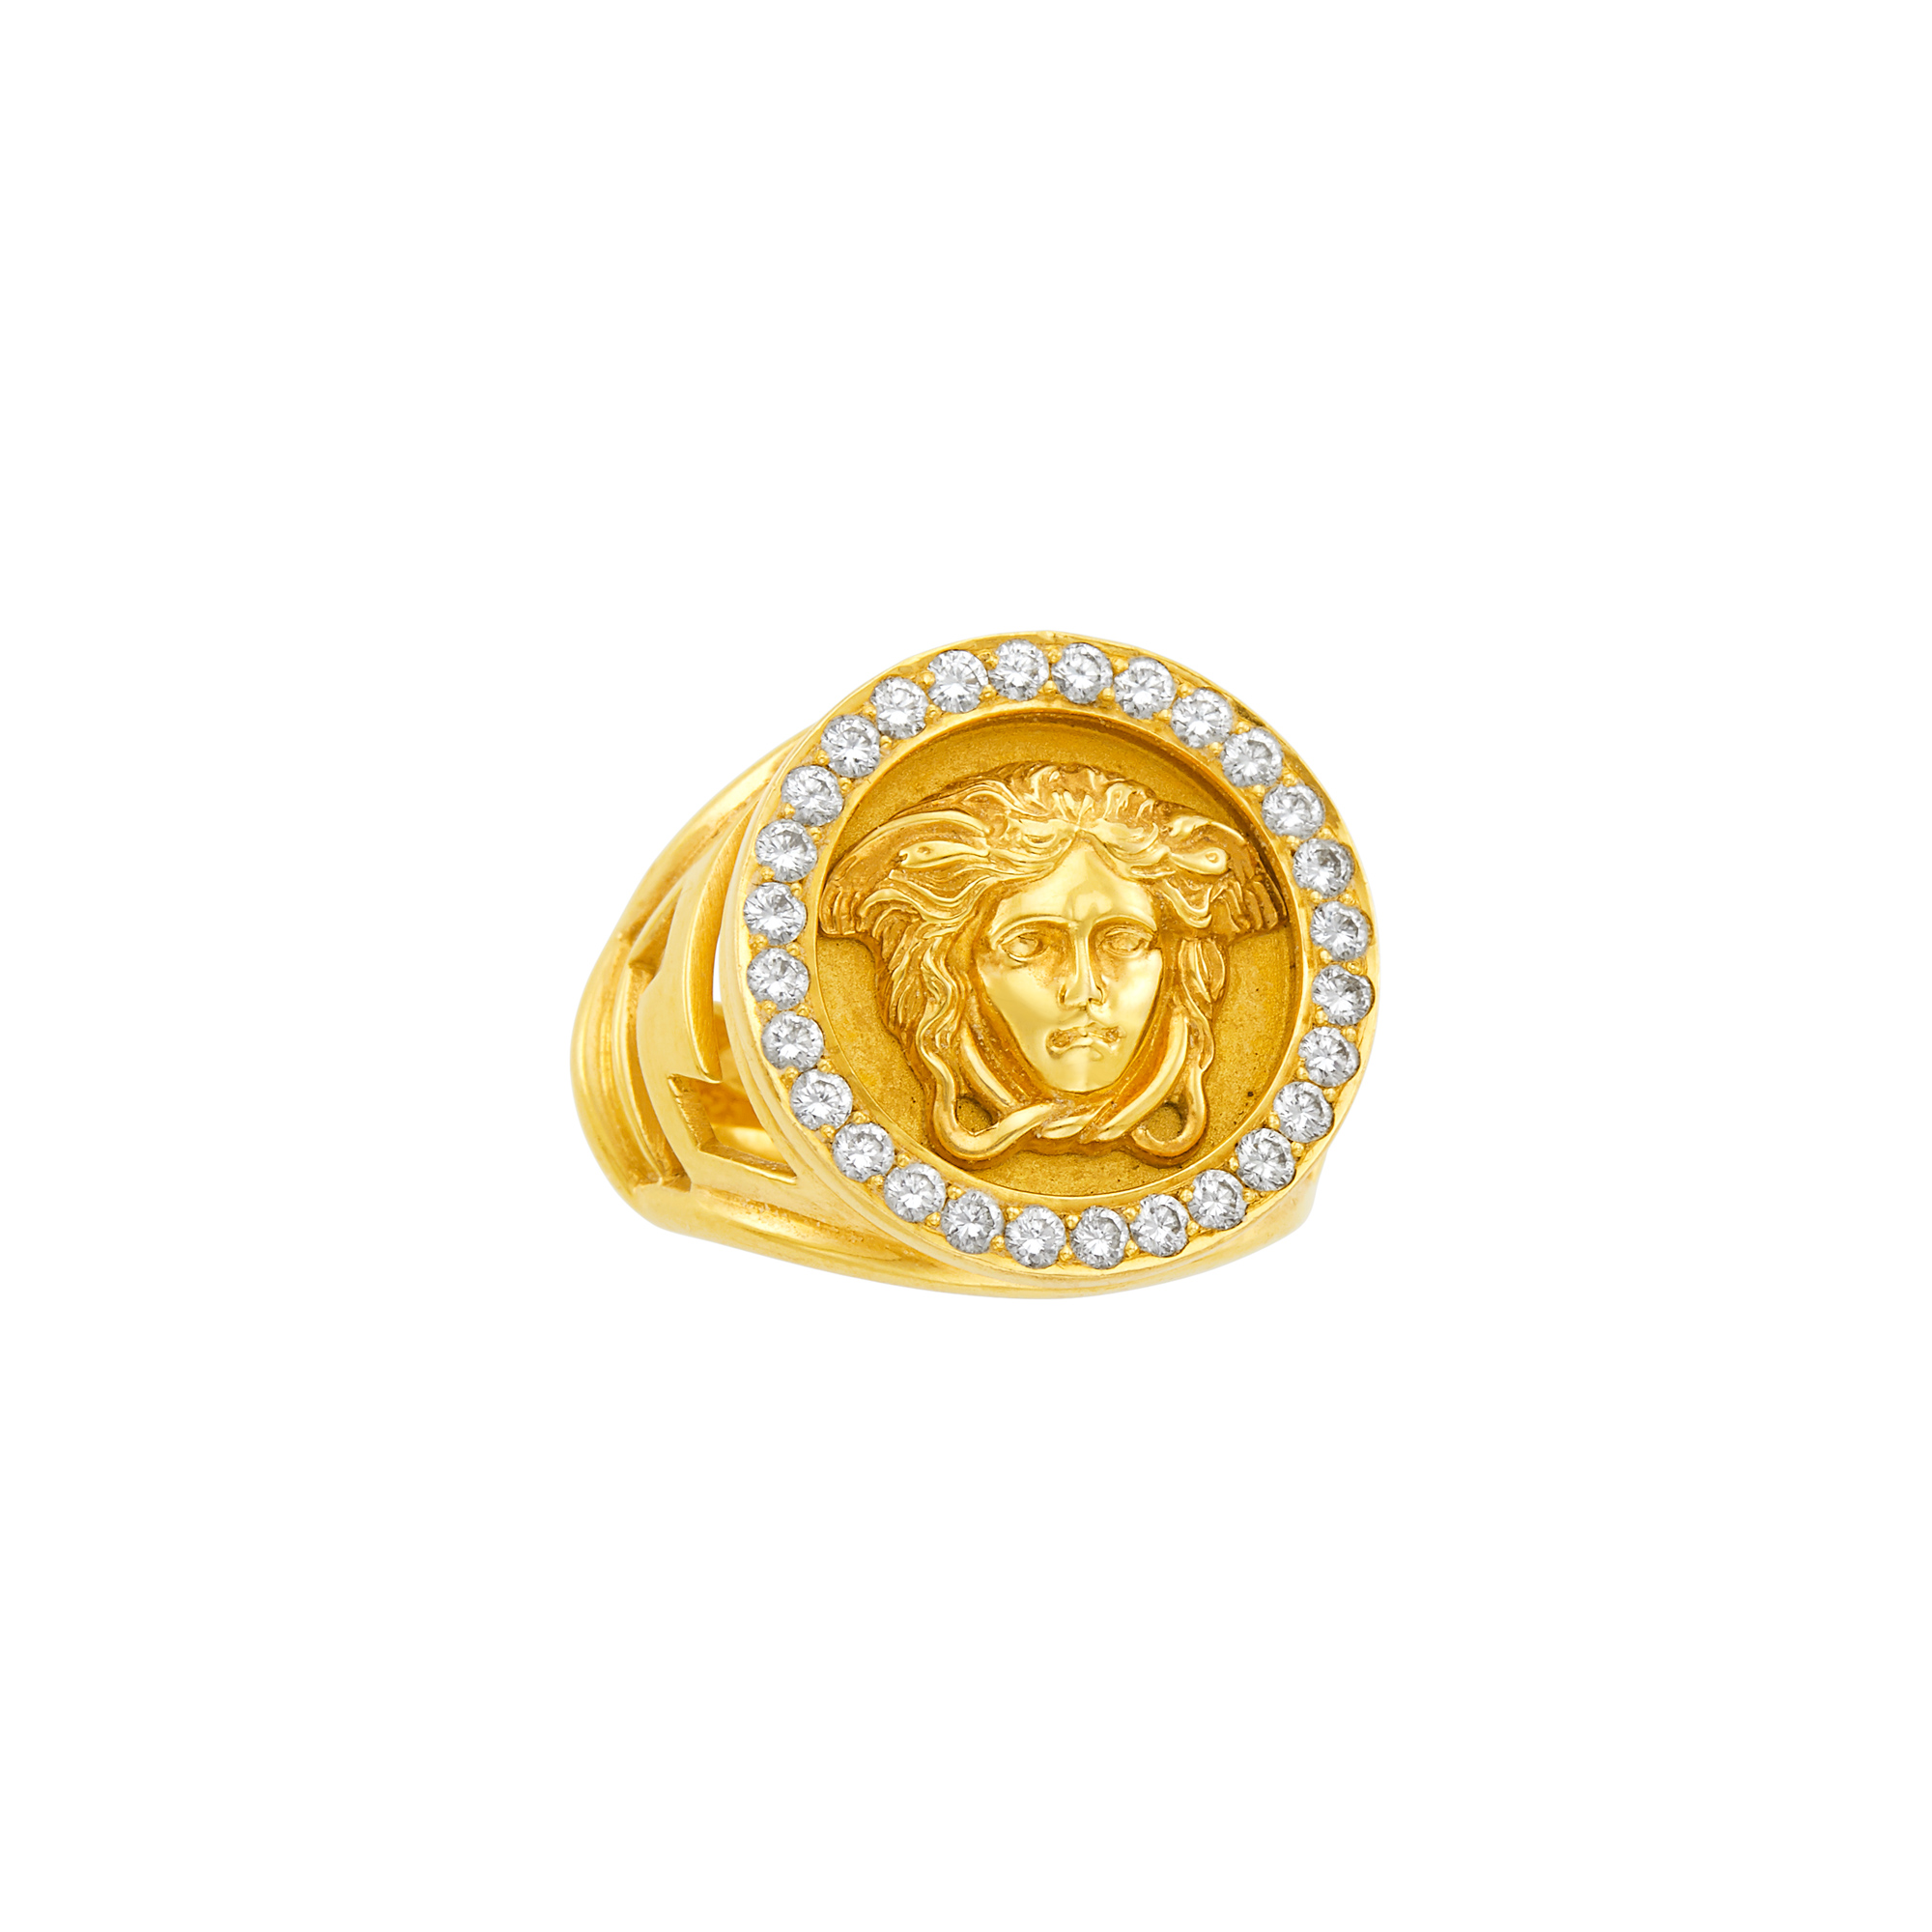 Lot image - Gold and Diamond Medusa Ring, Gianni Versace